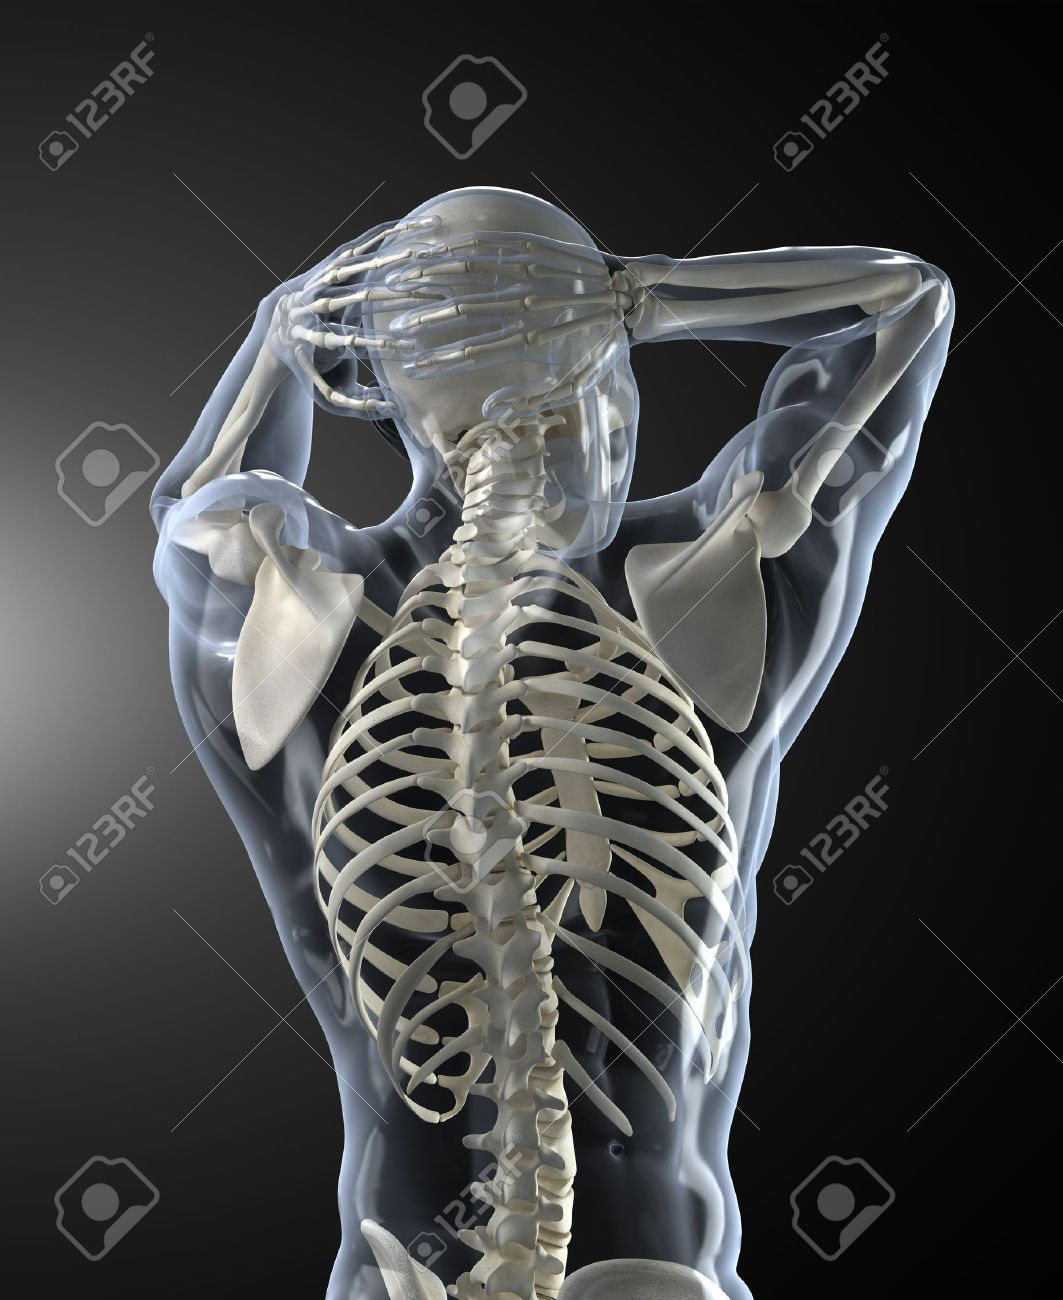 Human Body Medical Scan back view Stock Photo - 9090689